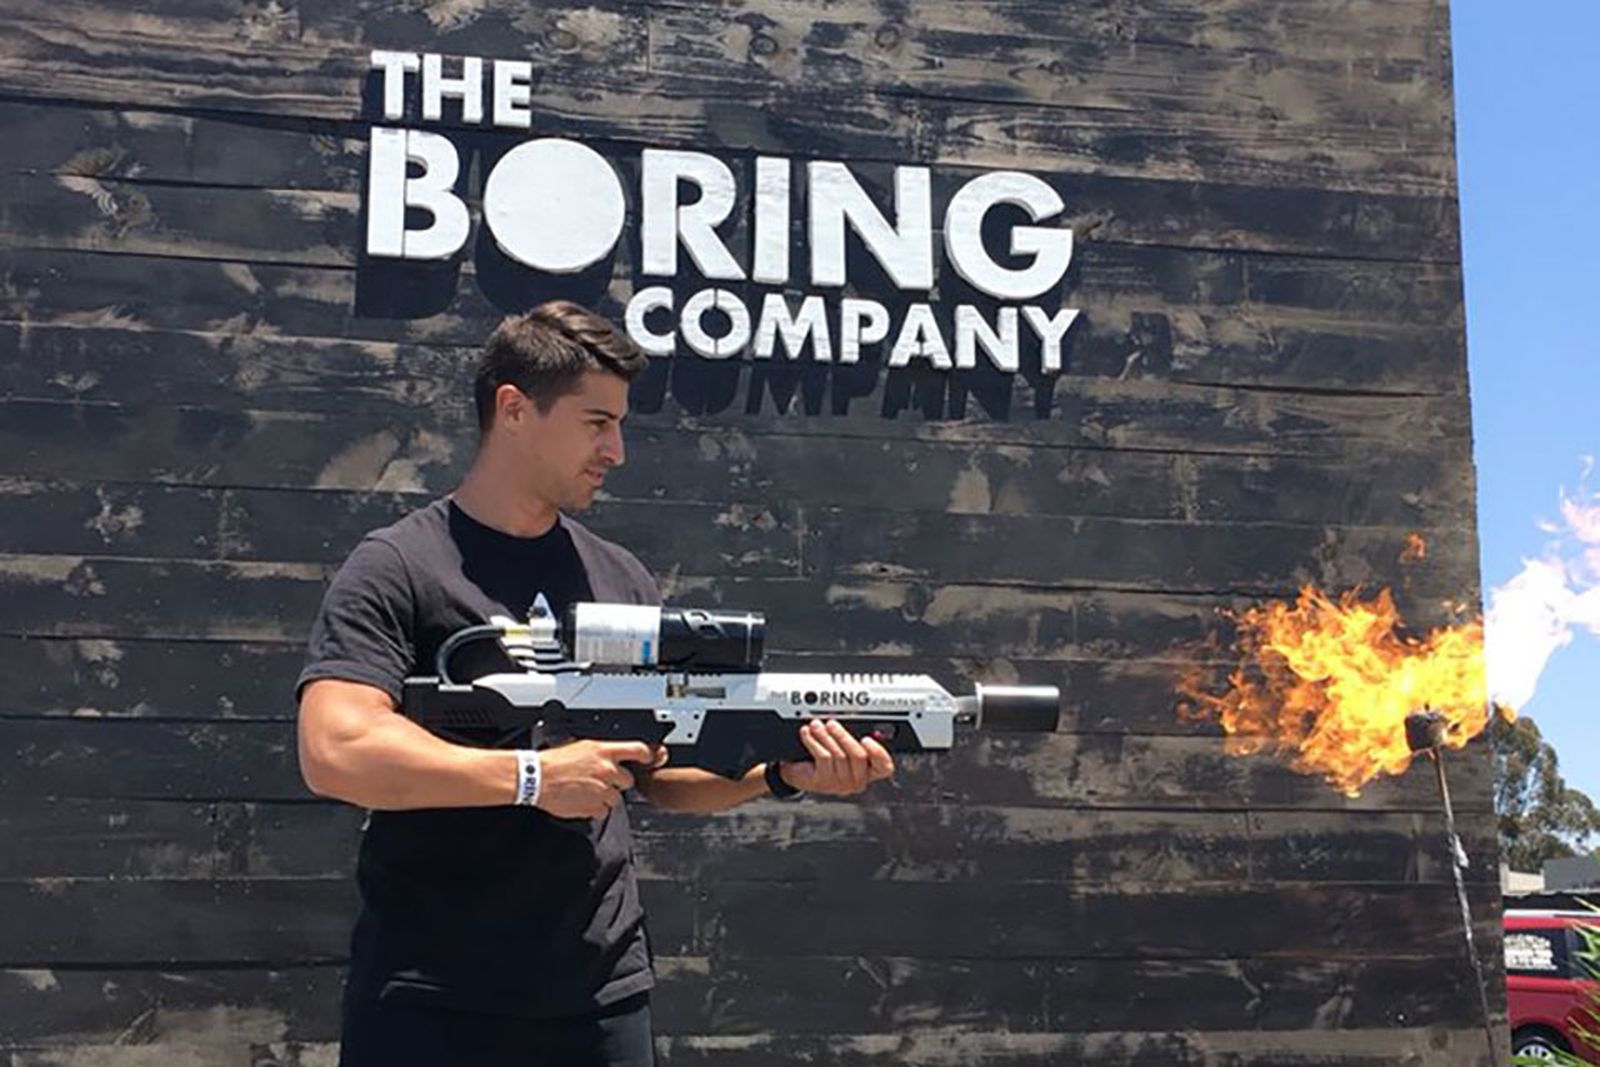 elon musk boring company flamethrower photos